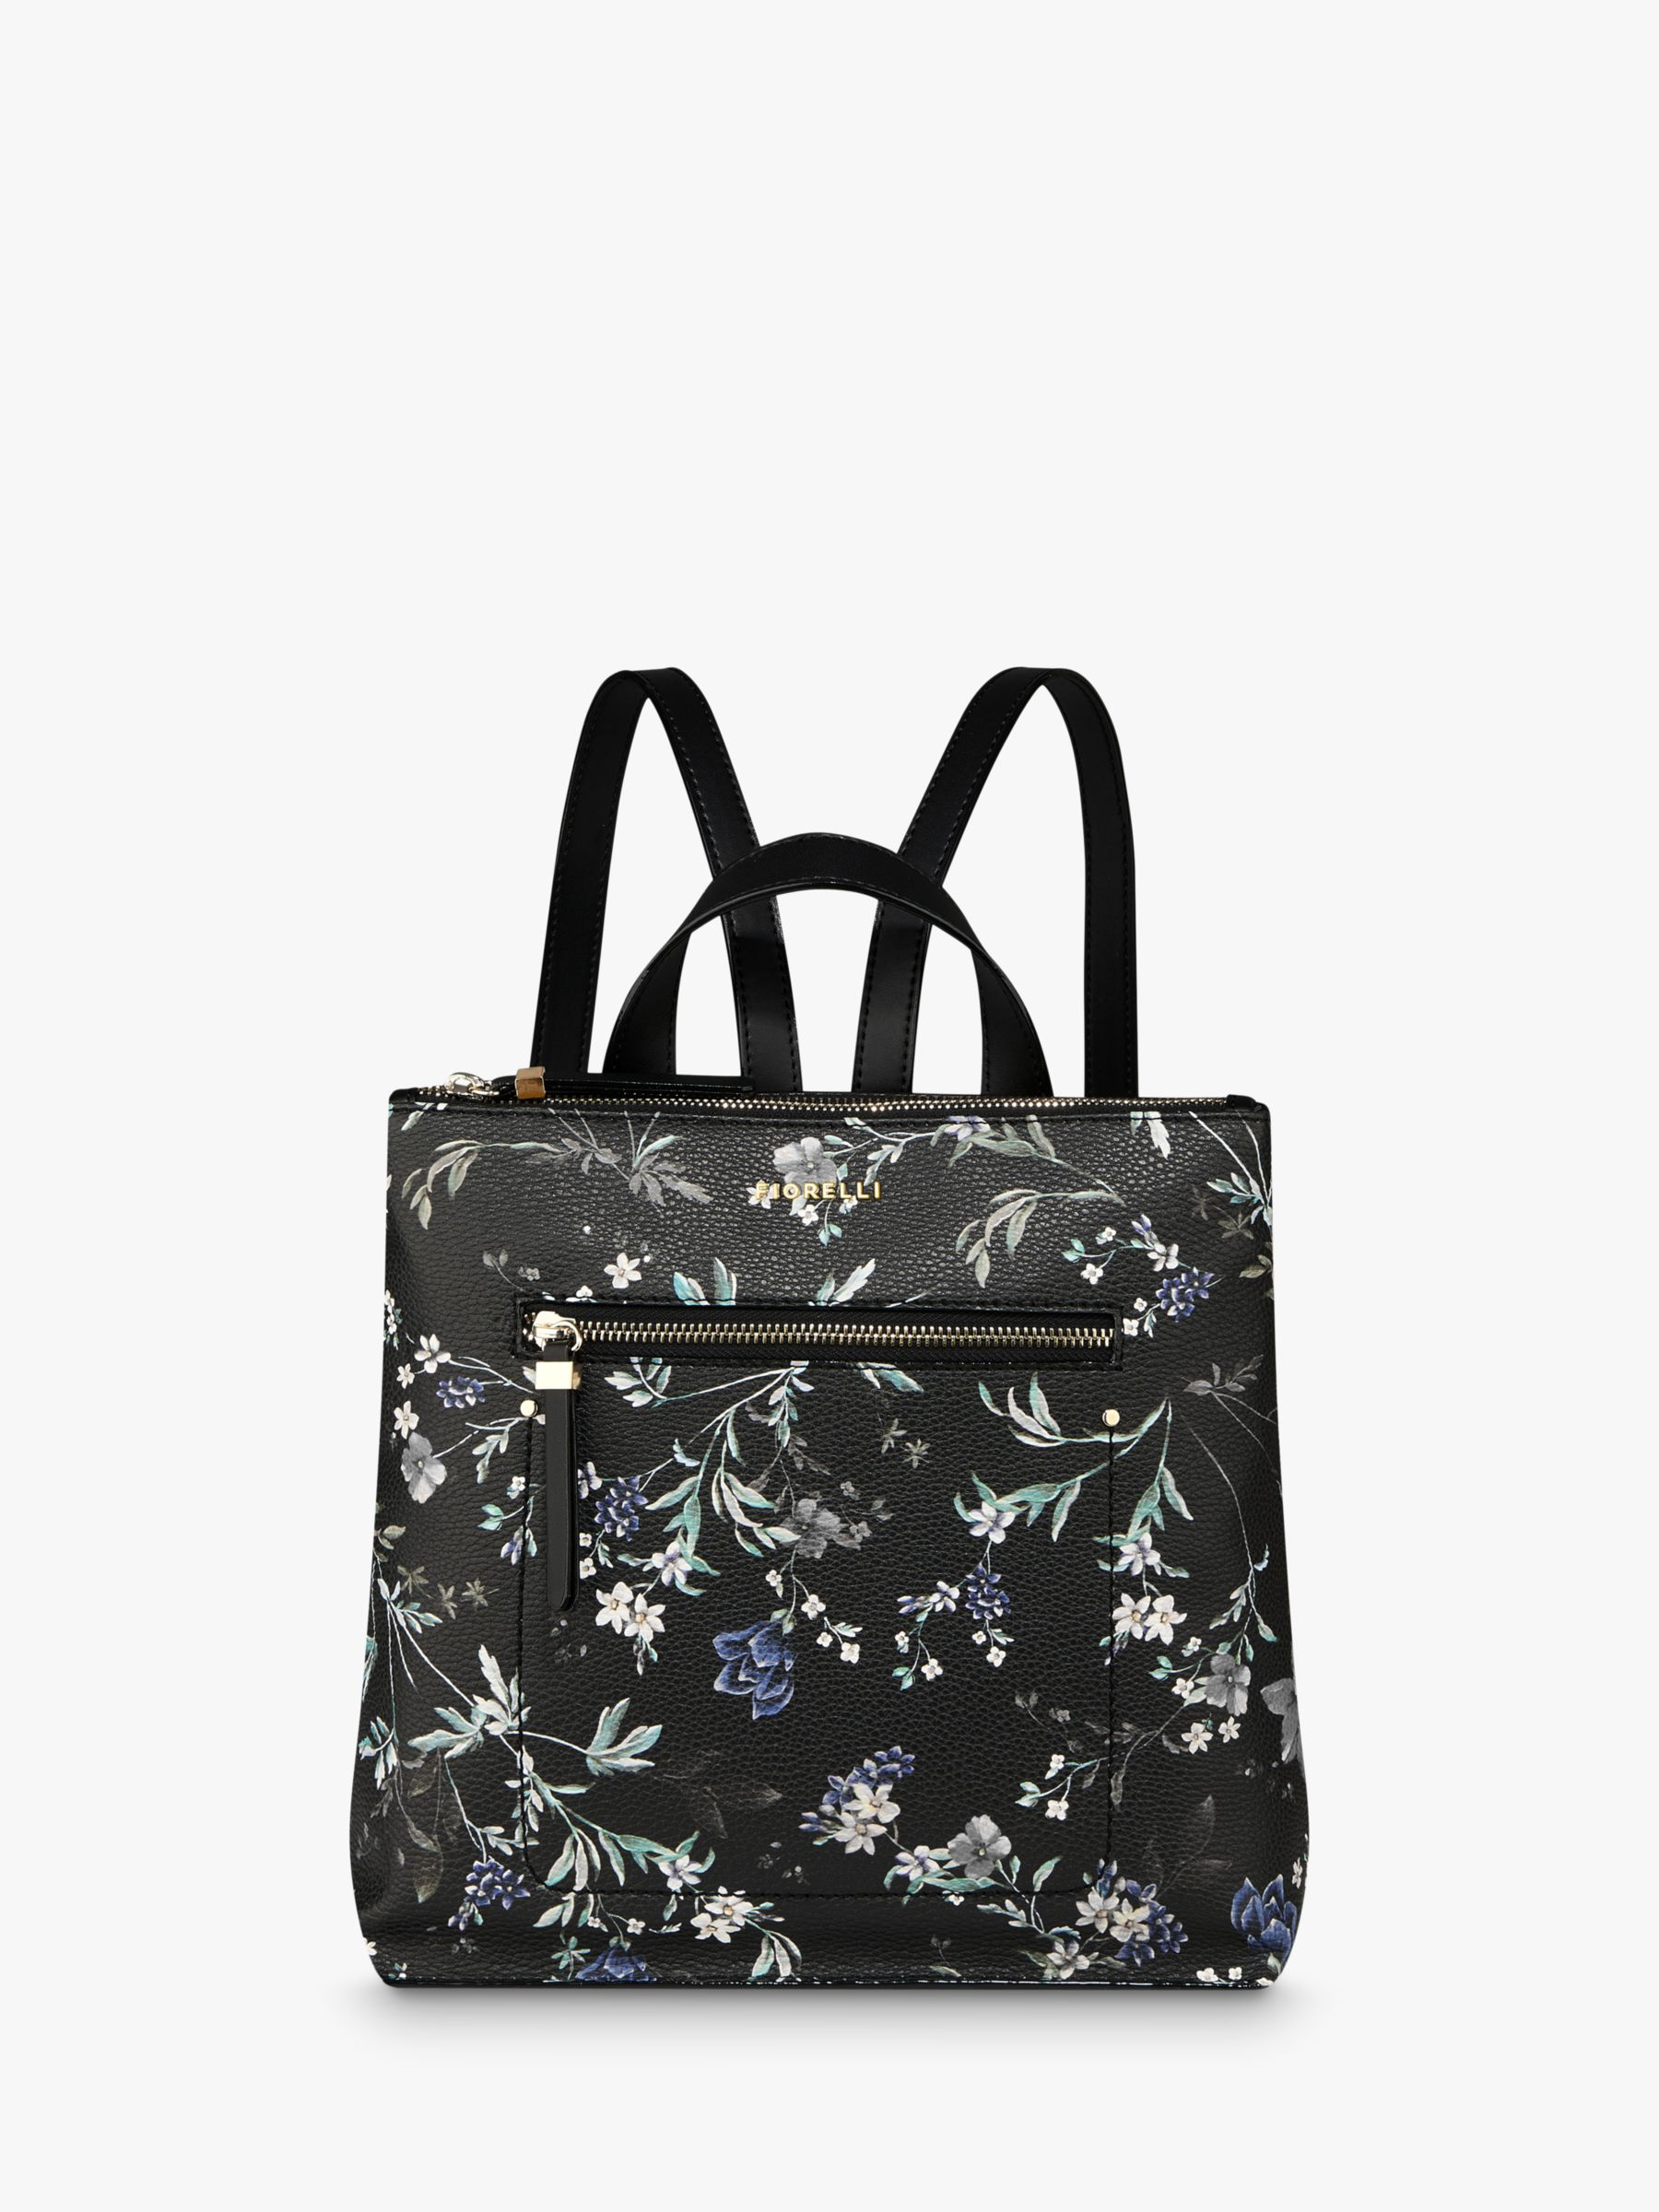 Fiorelli Fiorelli Finley Zip Top Backpack, Floral